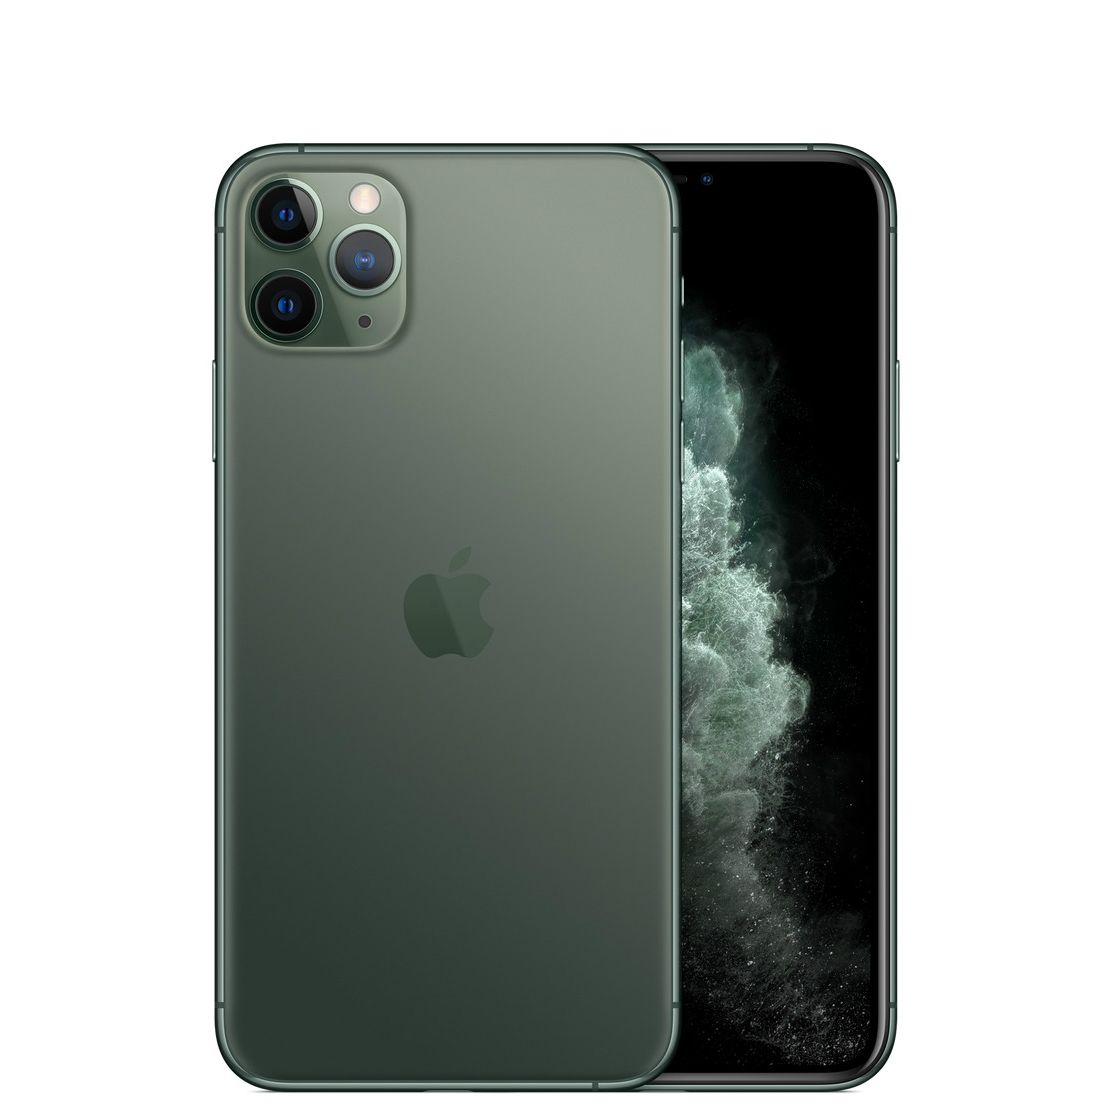 Image of Apple iPhone 11 Pro 64GB A2217 Dual Sim with Tempered Glass Screen Protector - Midnight Green